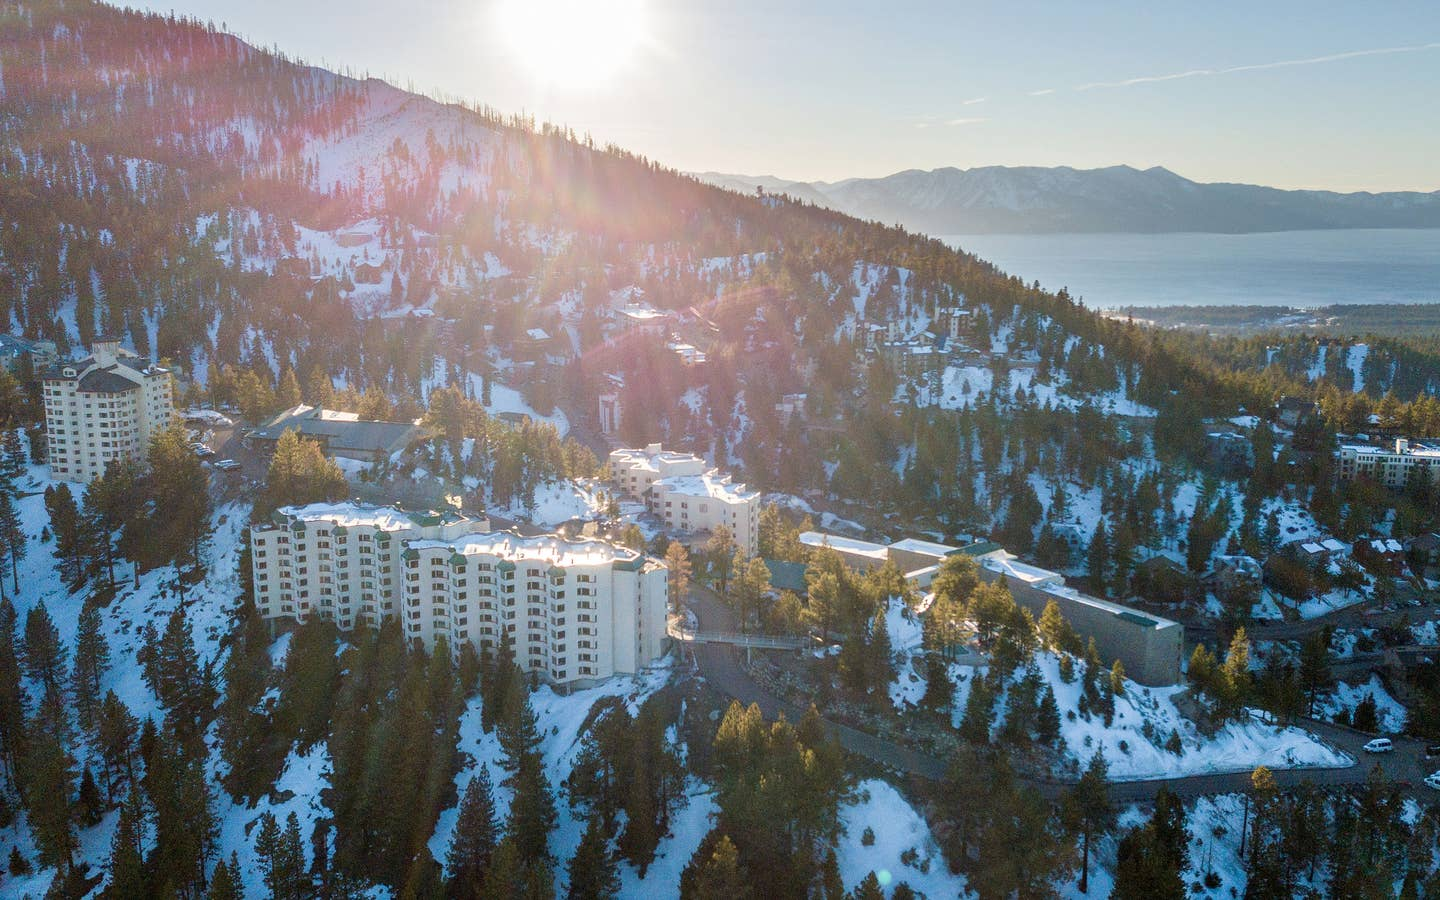 Exterior view of property on snowy hills at Tahoe Ridge Resort in Stateline, Nevada.